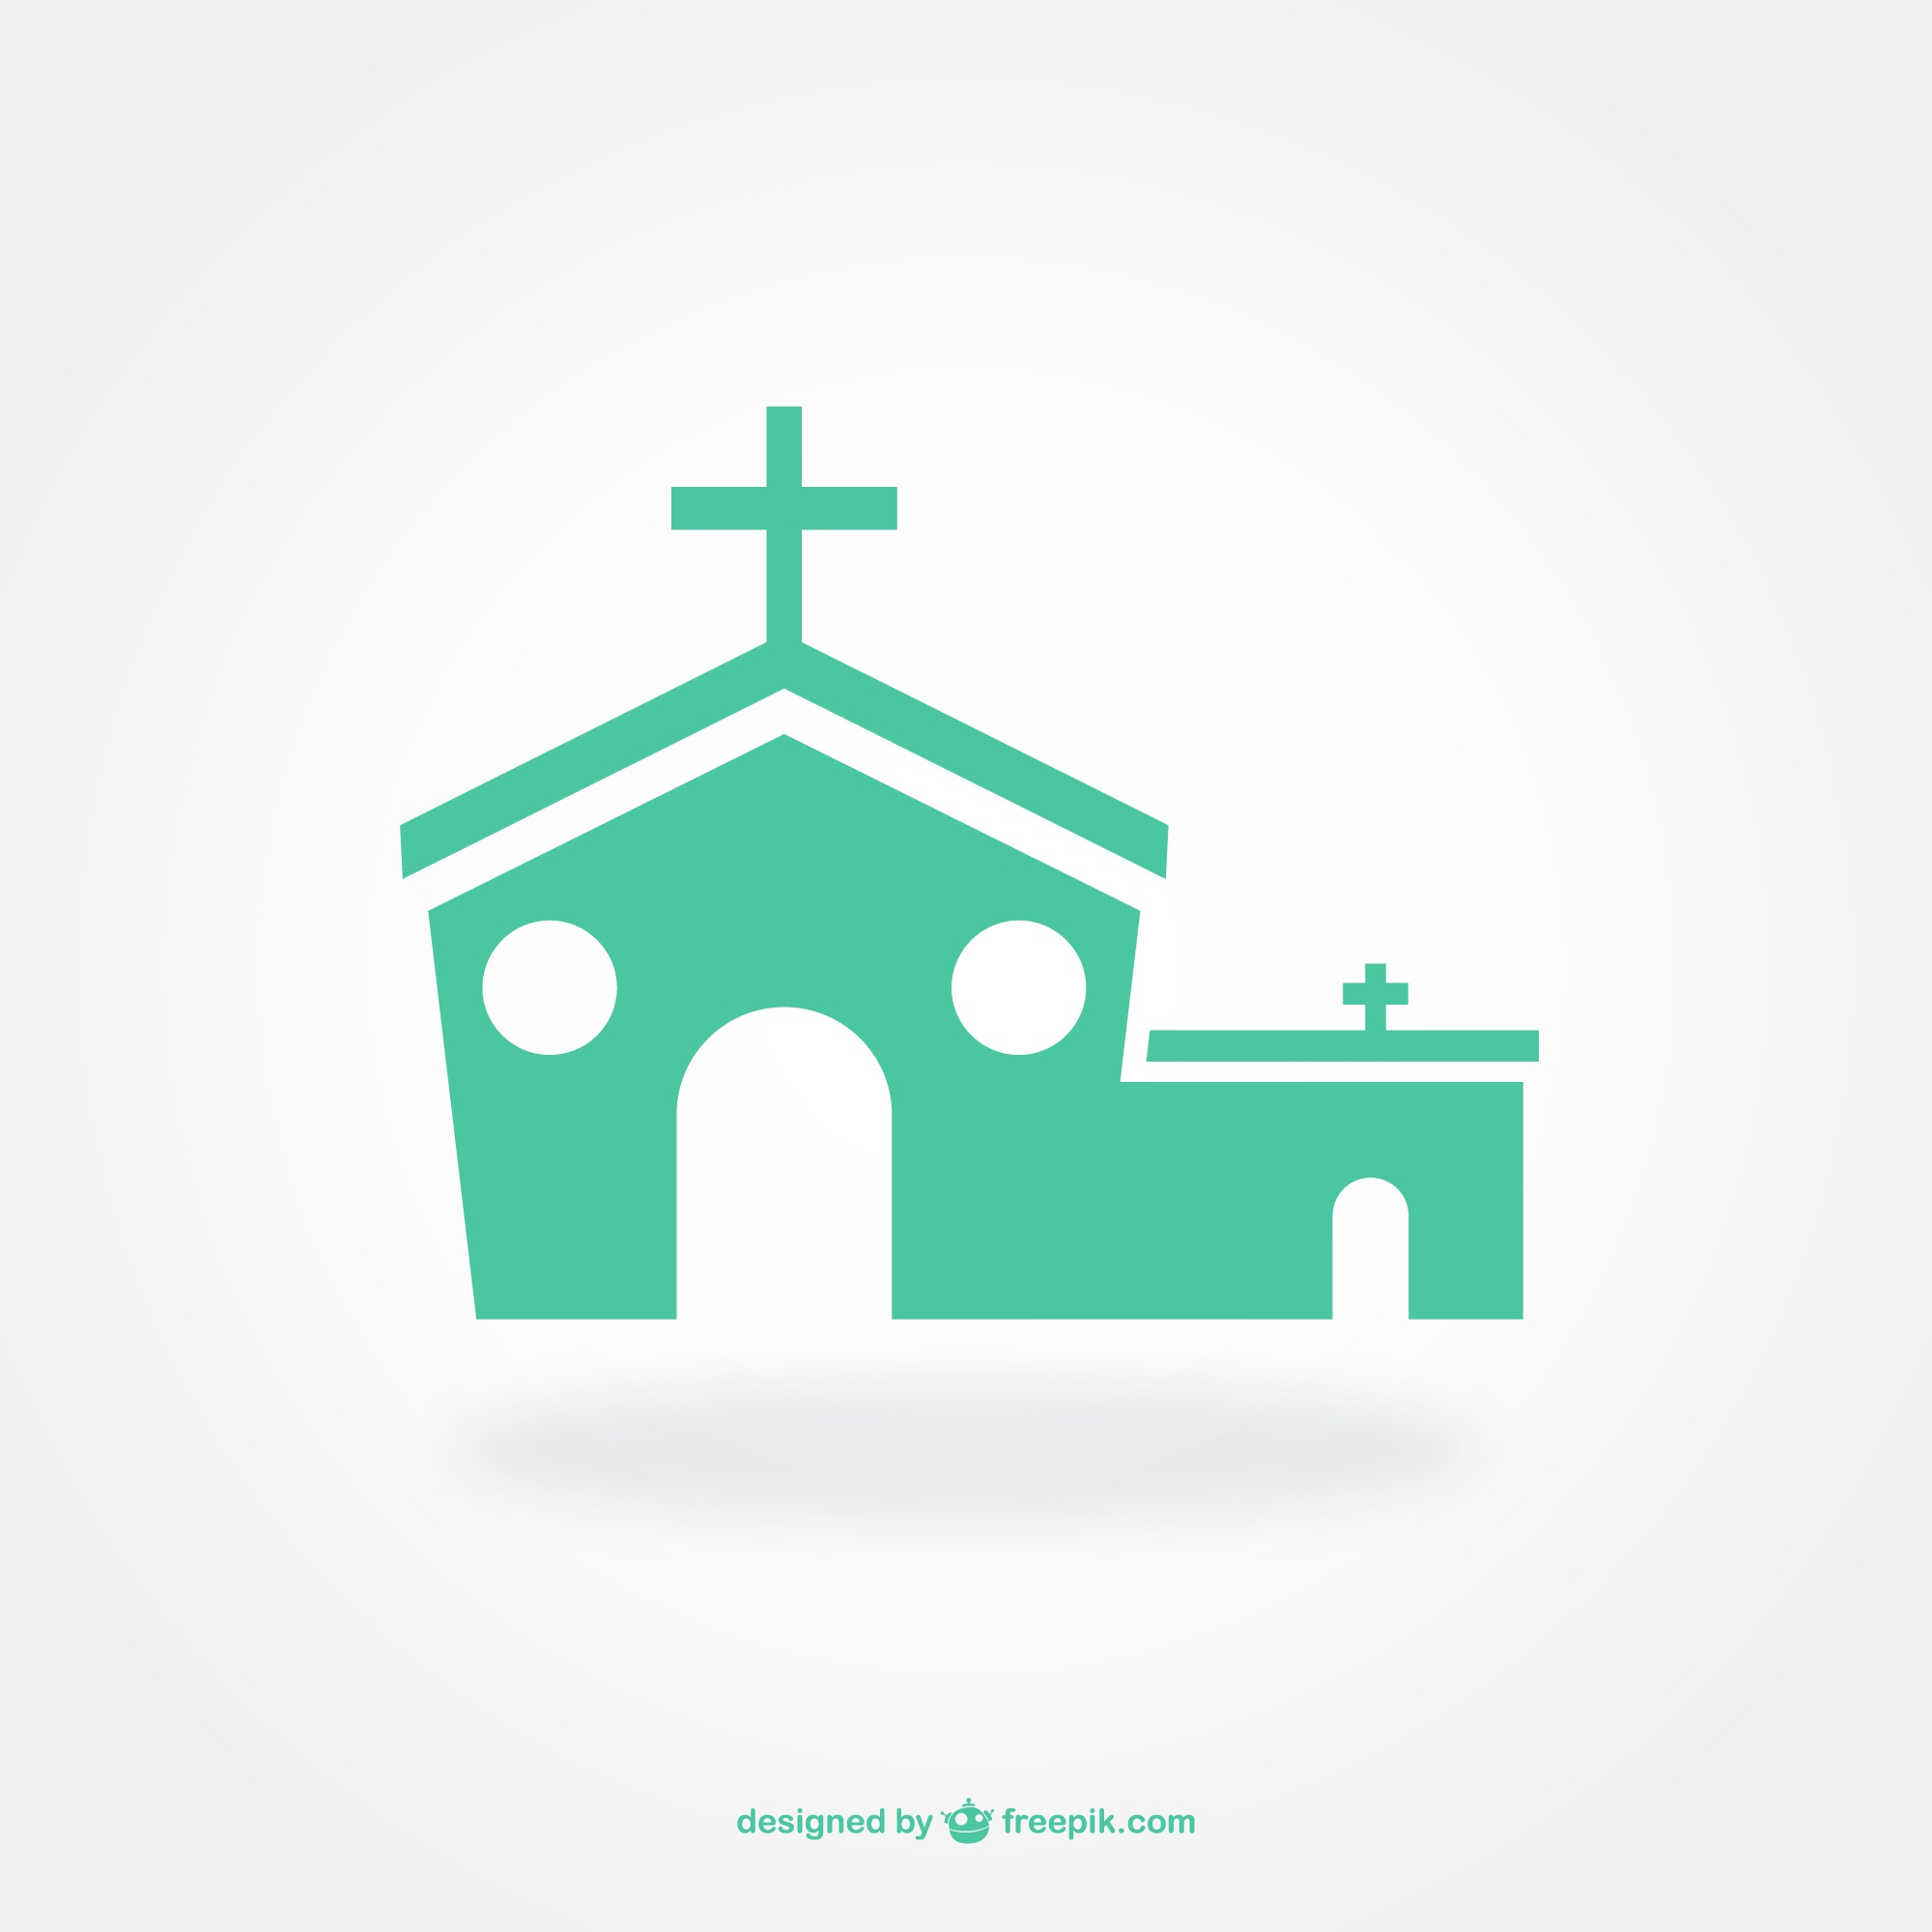 Flat pictogram design of church